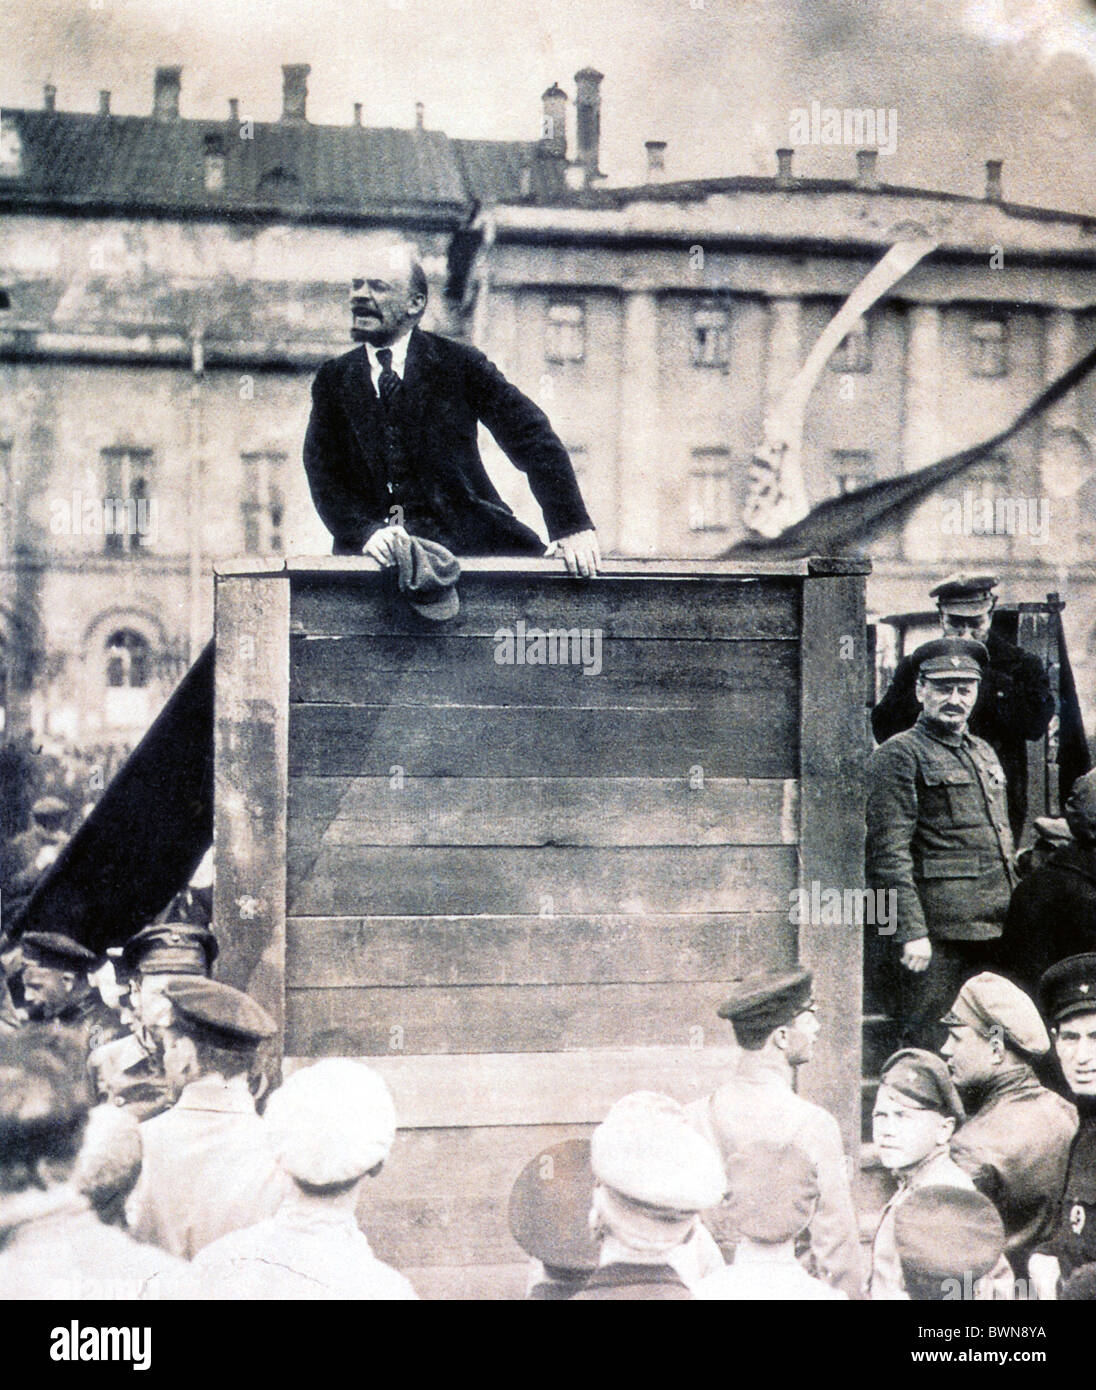 Vladimir Lenin May 5 1920 Bolschoi theatre Moscow speaking troops against Pilsudski army against Poland woode - Stock Image